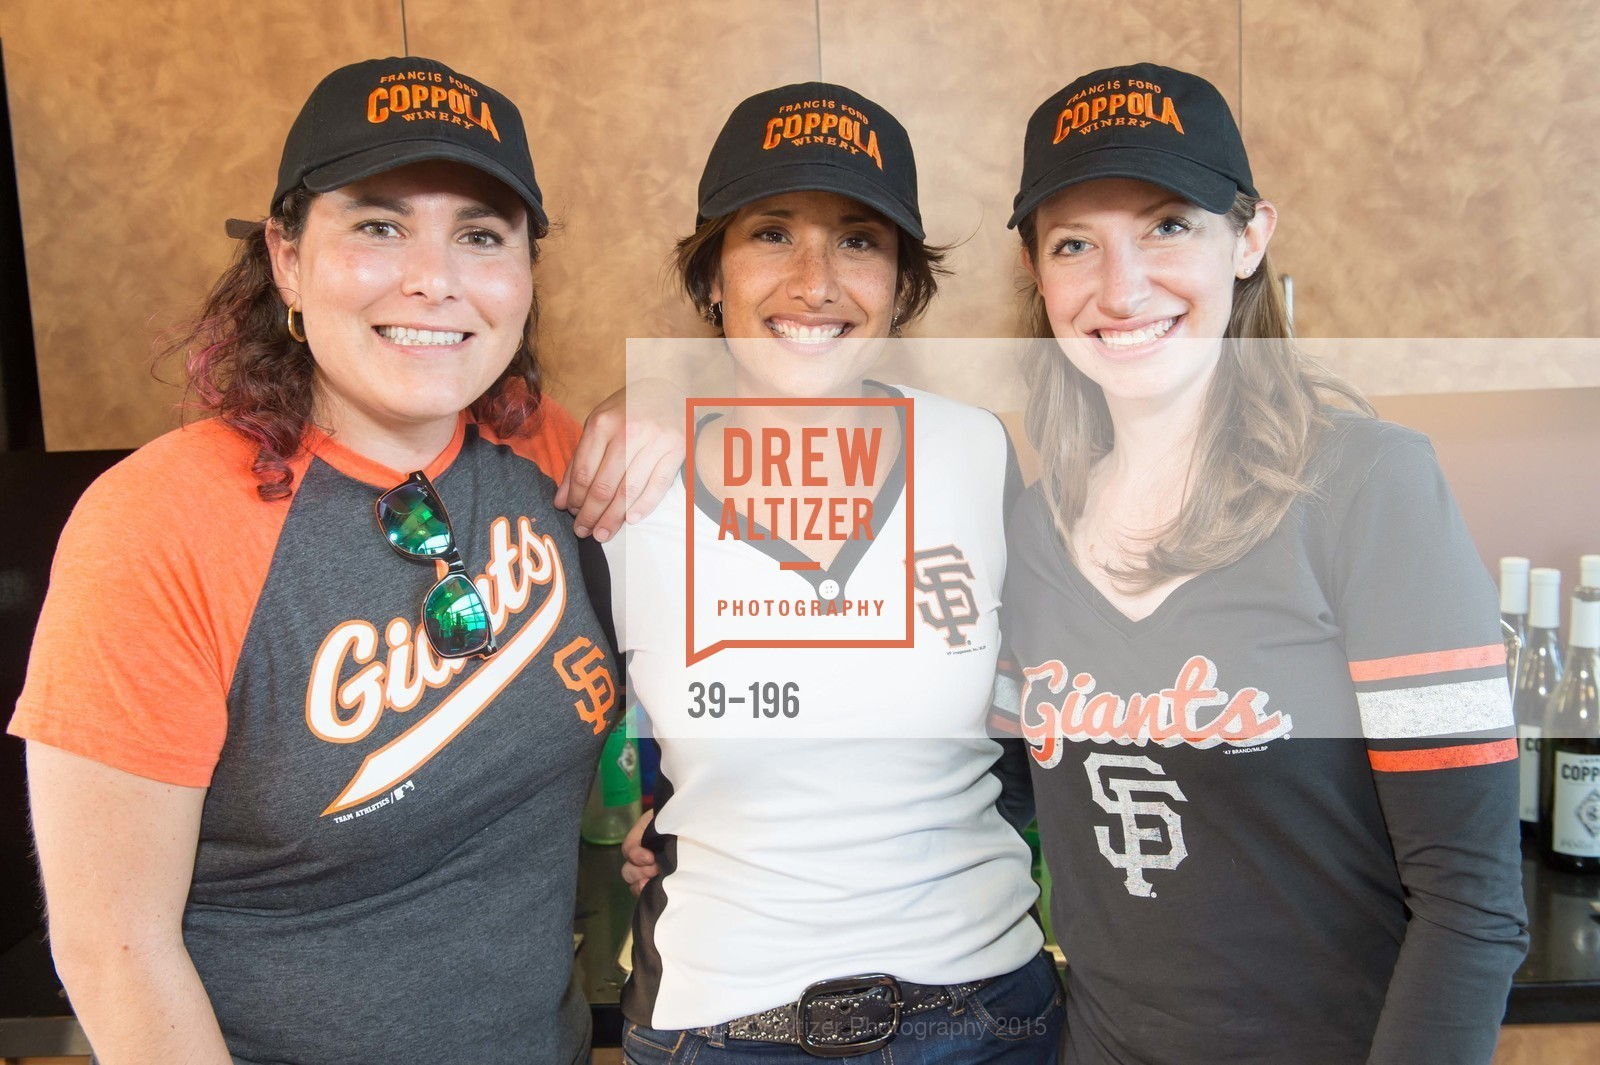 Natalie Dale, Lise Asimont, Meghan Rech, Francis Ford Coppola Winery Presents Diamond on the Diamond, San Francisco Giants AT&T Park, Virgin America Loft. 24 Willie Mays Plaza, July 10th, 2015,Drew Altizer, Drew Altizer Photography, full-service agency, private events, San Francisco photographer, photographer california